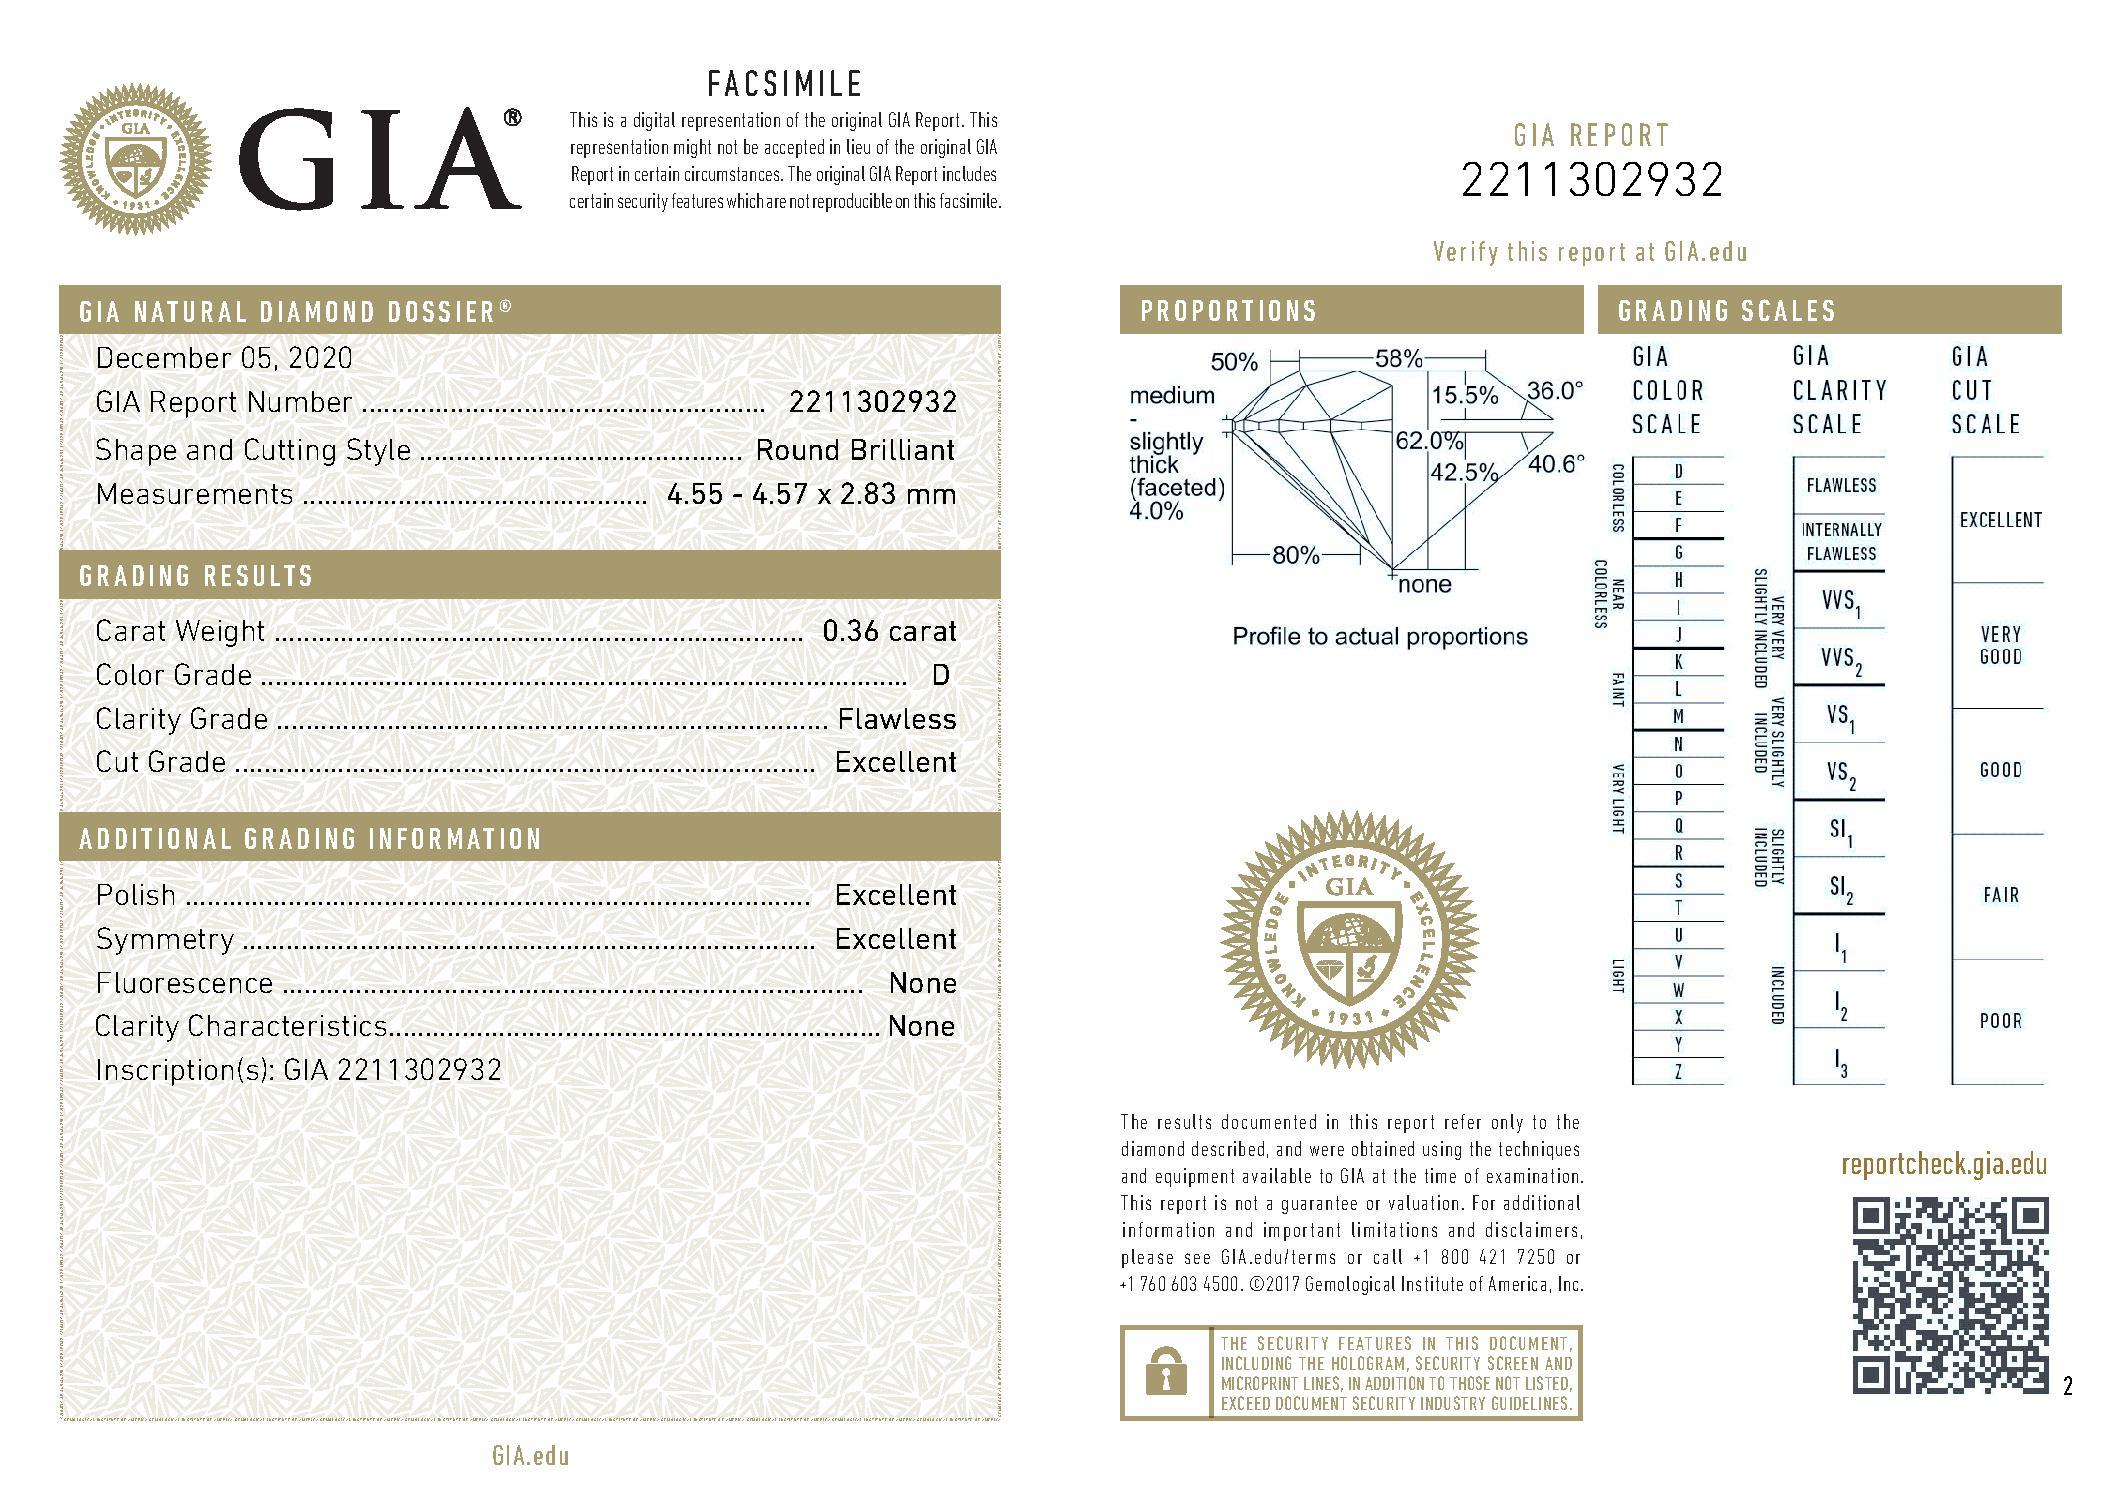 This is a 0.36 carat round shape, D color, FL clarity natural diamond accompanied by a GIA grading report.